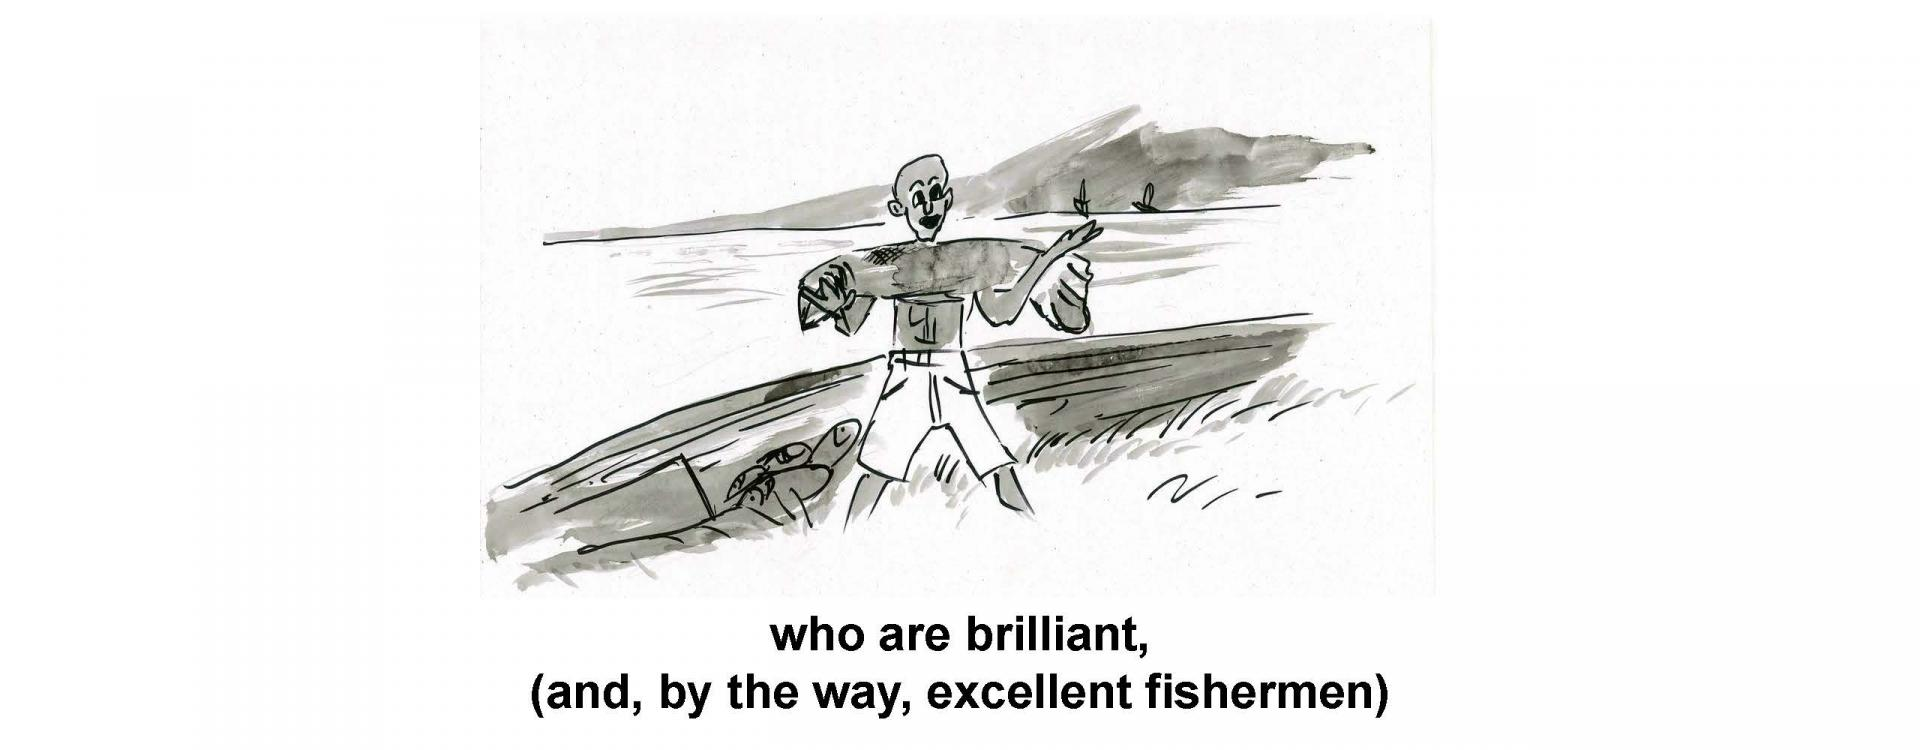 who are brilliant, and, by the way, excellent fishermen)